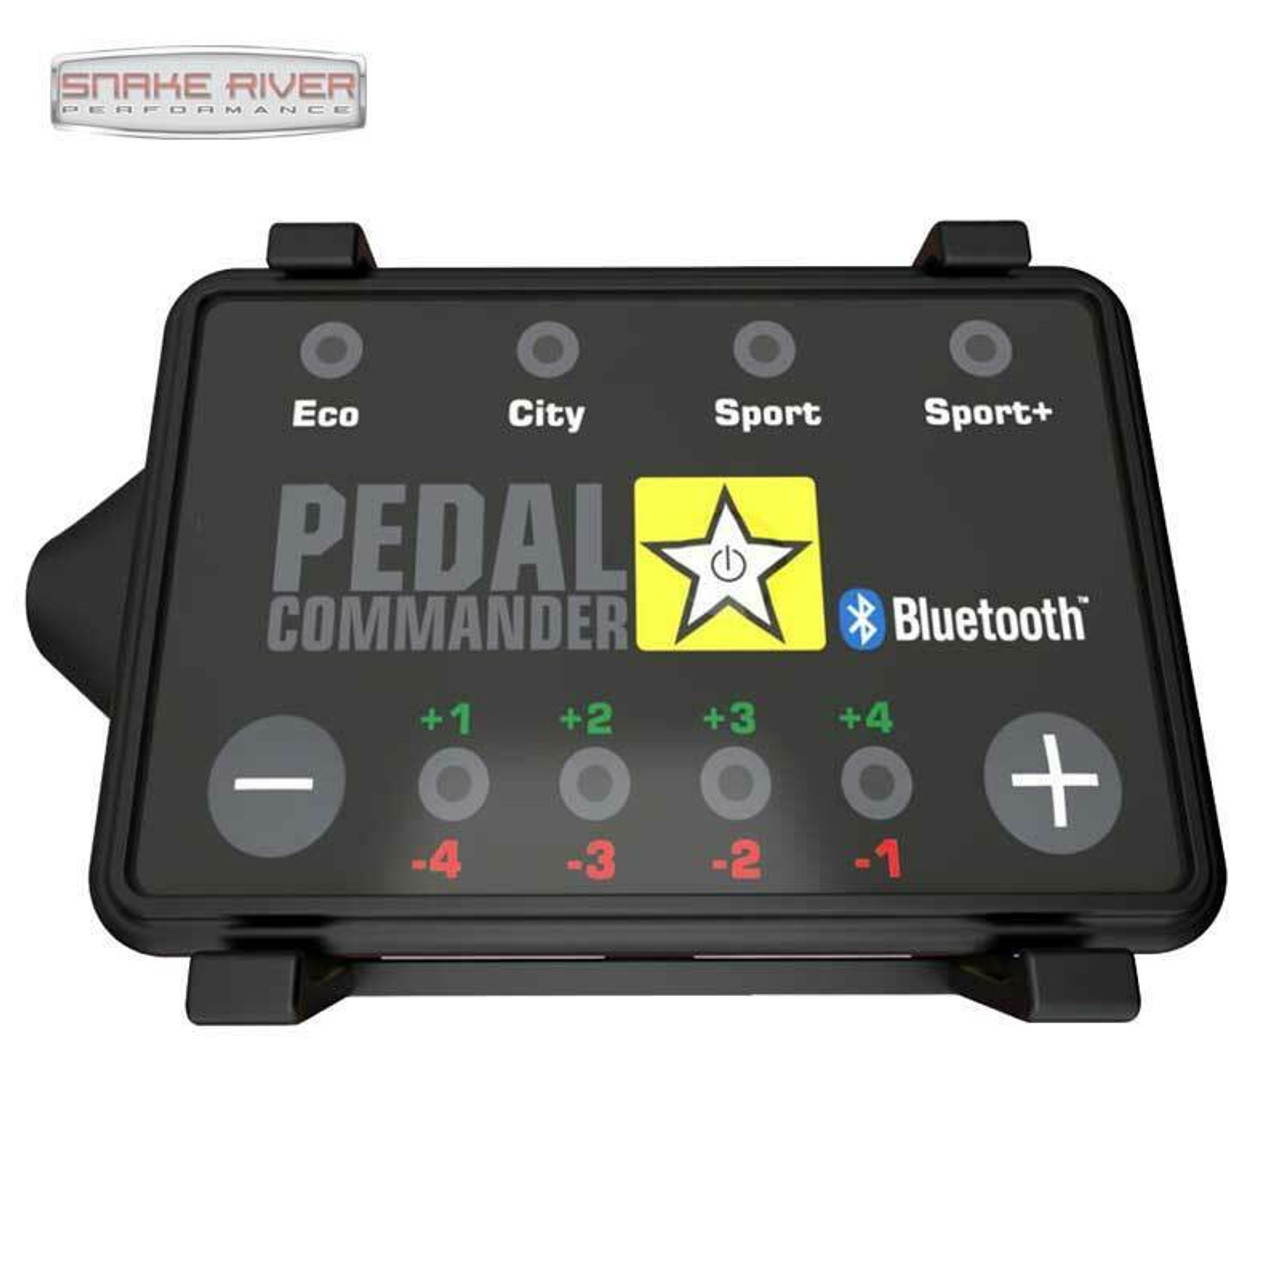 PEDAL COMMANDER THROTTLE CONTROLLER FOR 07-20 TOYOTA TUNDRA 08-20 SEQUOIA PC27